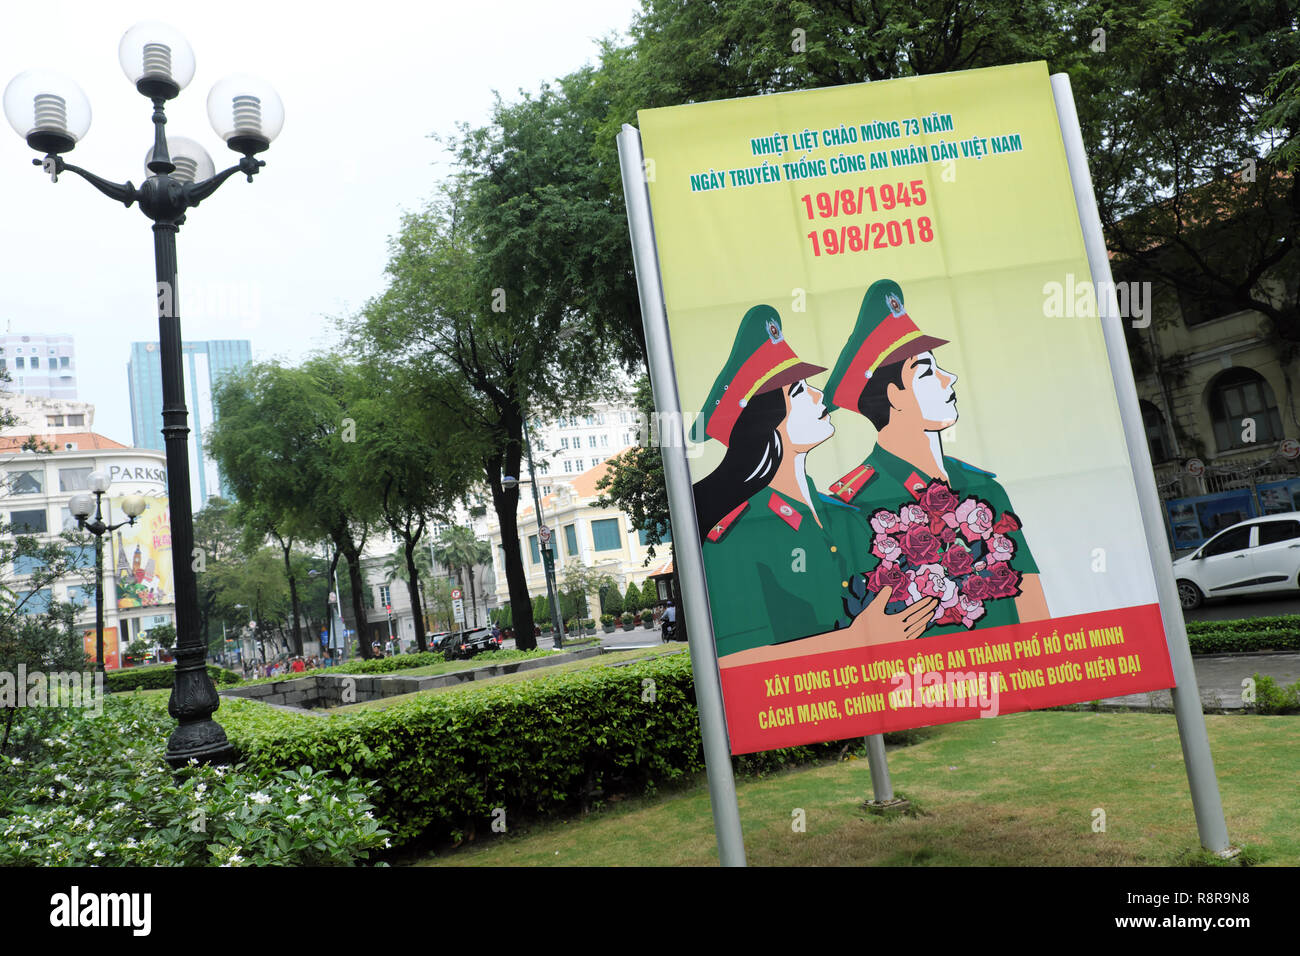 Ho Chi Minh City, Vietnam - Communist party national propaganda posters in the city centre in August 2018 - Stock Image